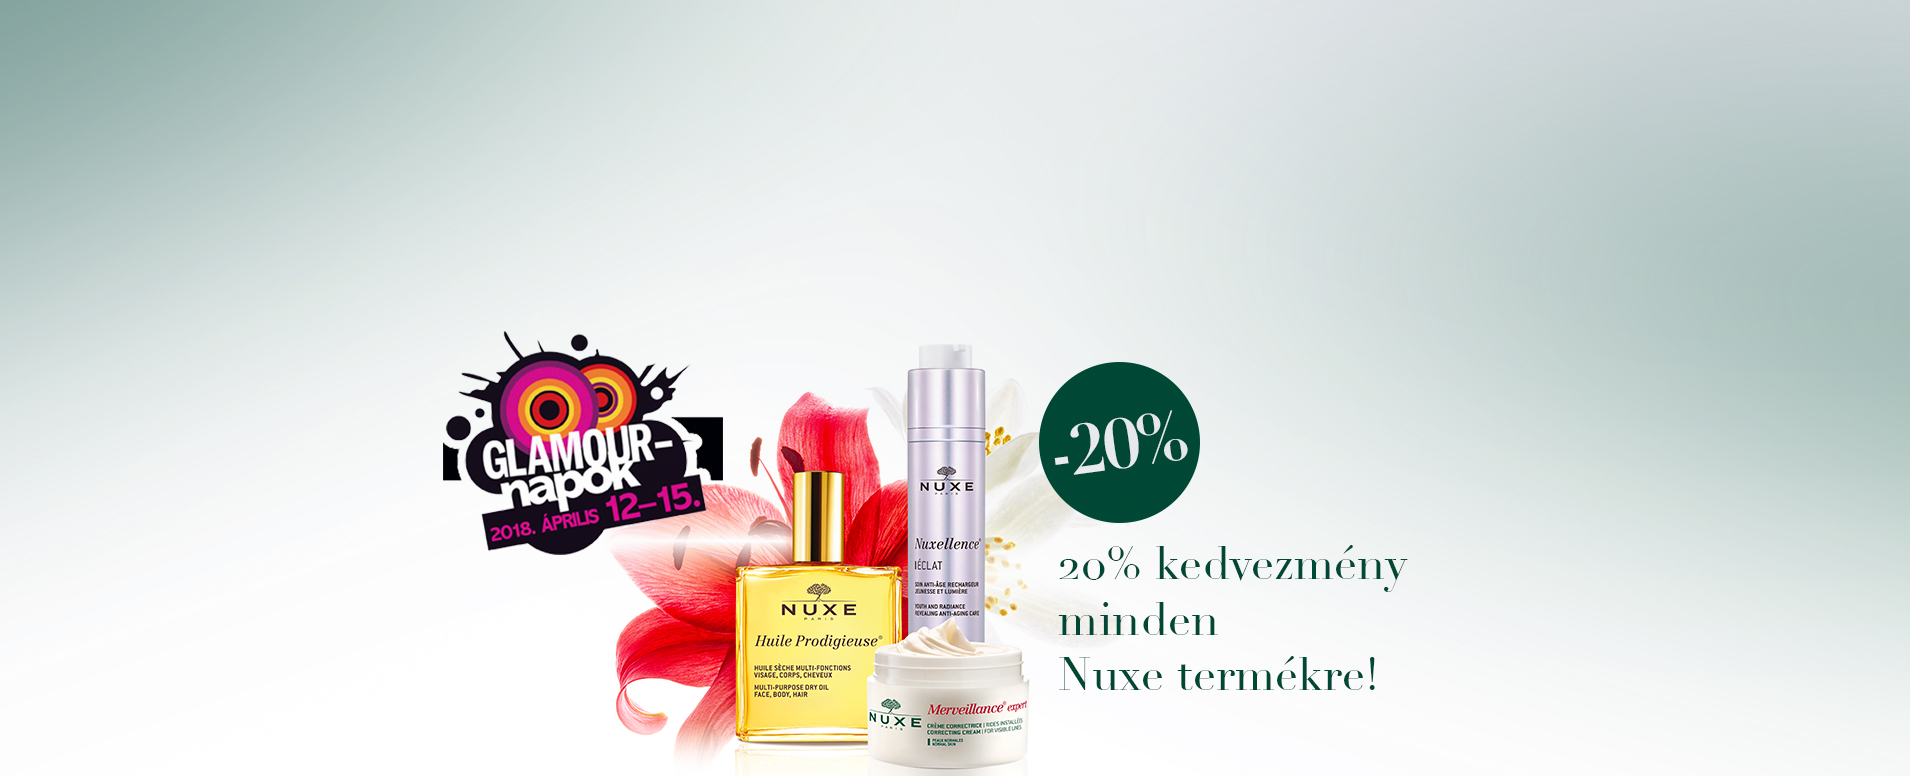 4-apr-nuxemagyarorszag-glamour-napok-banner